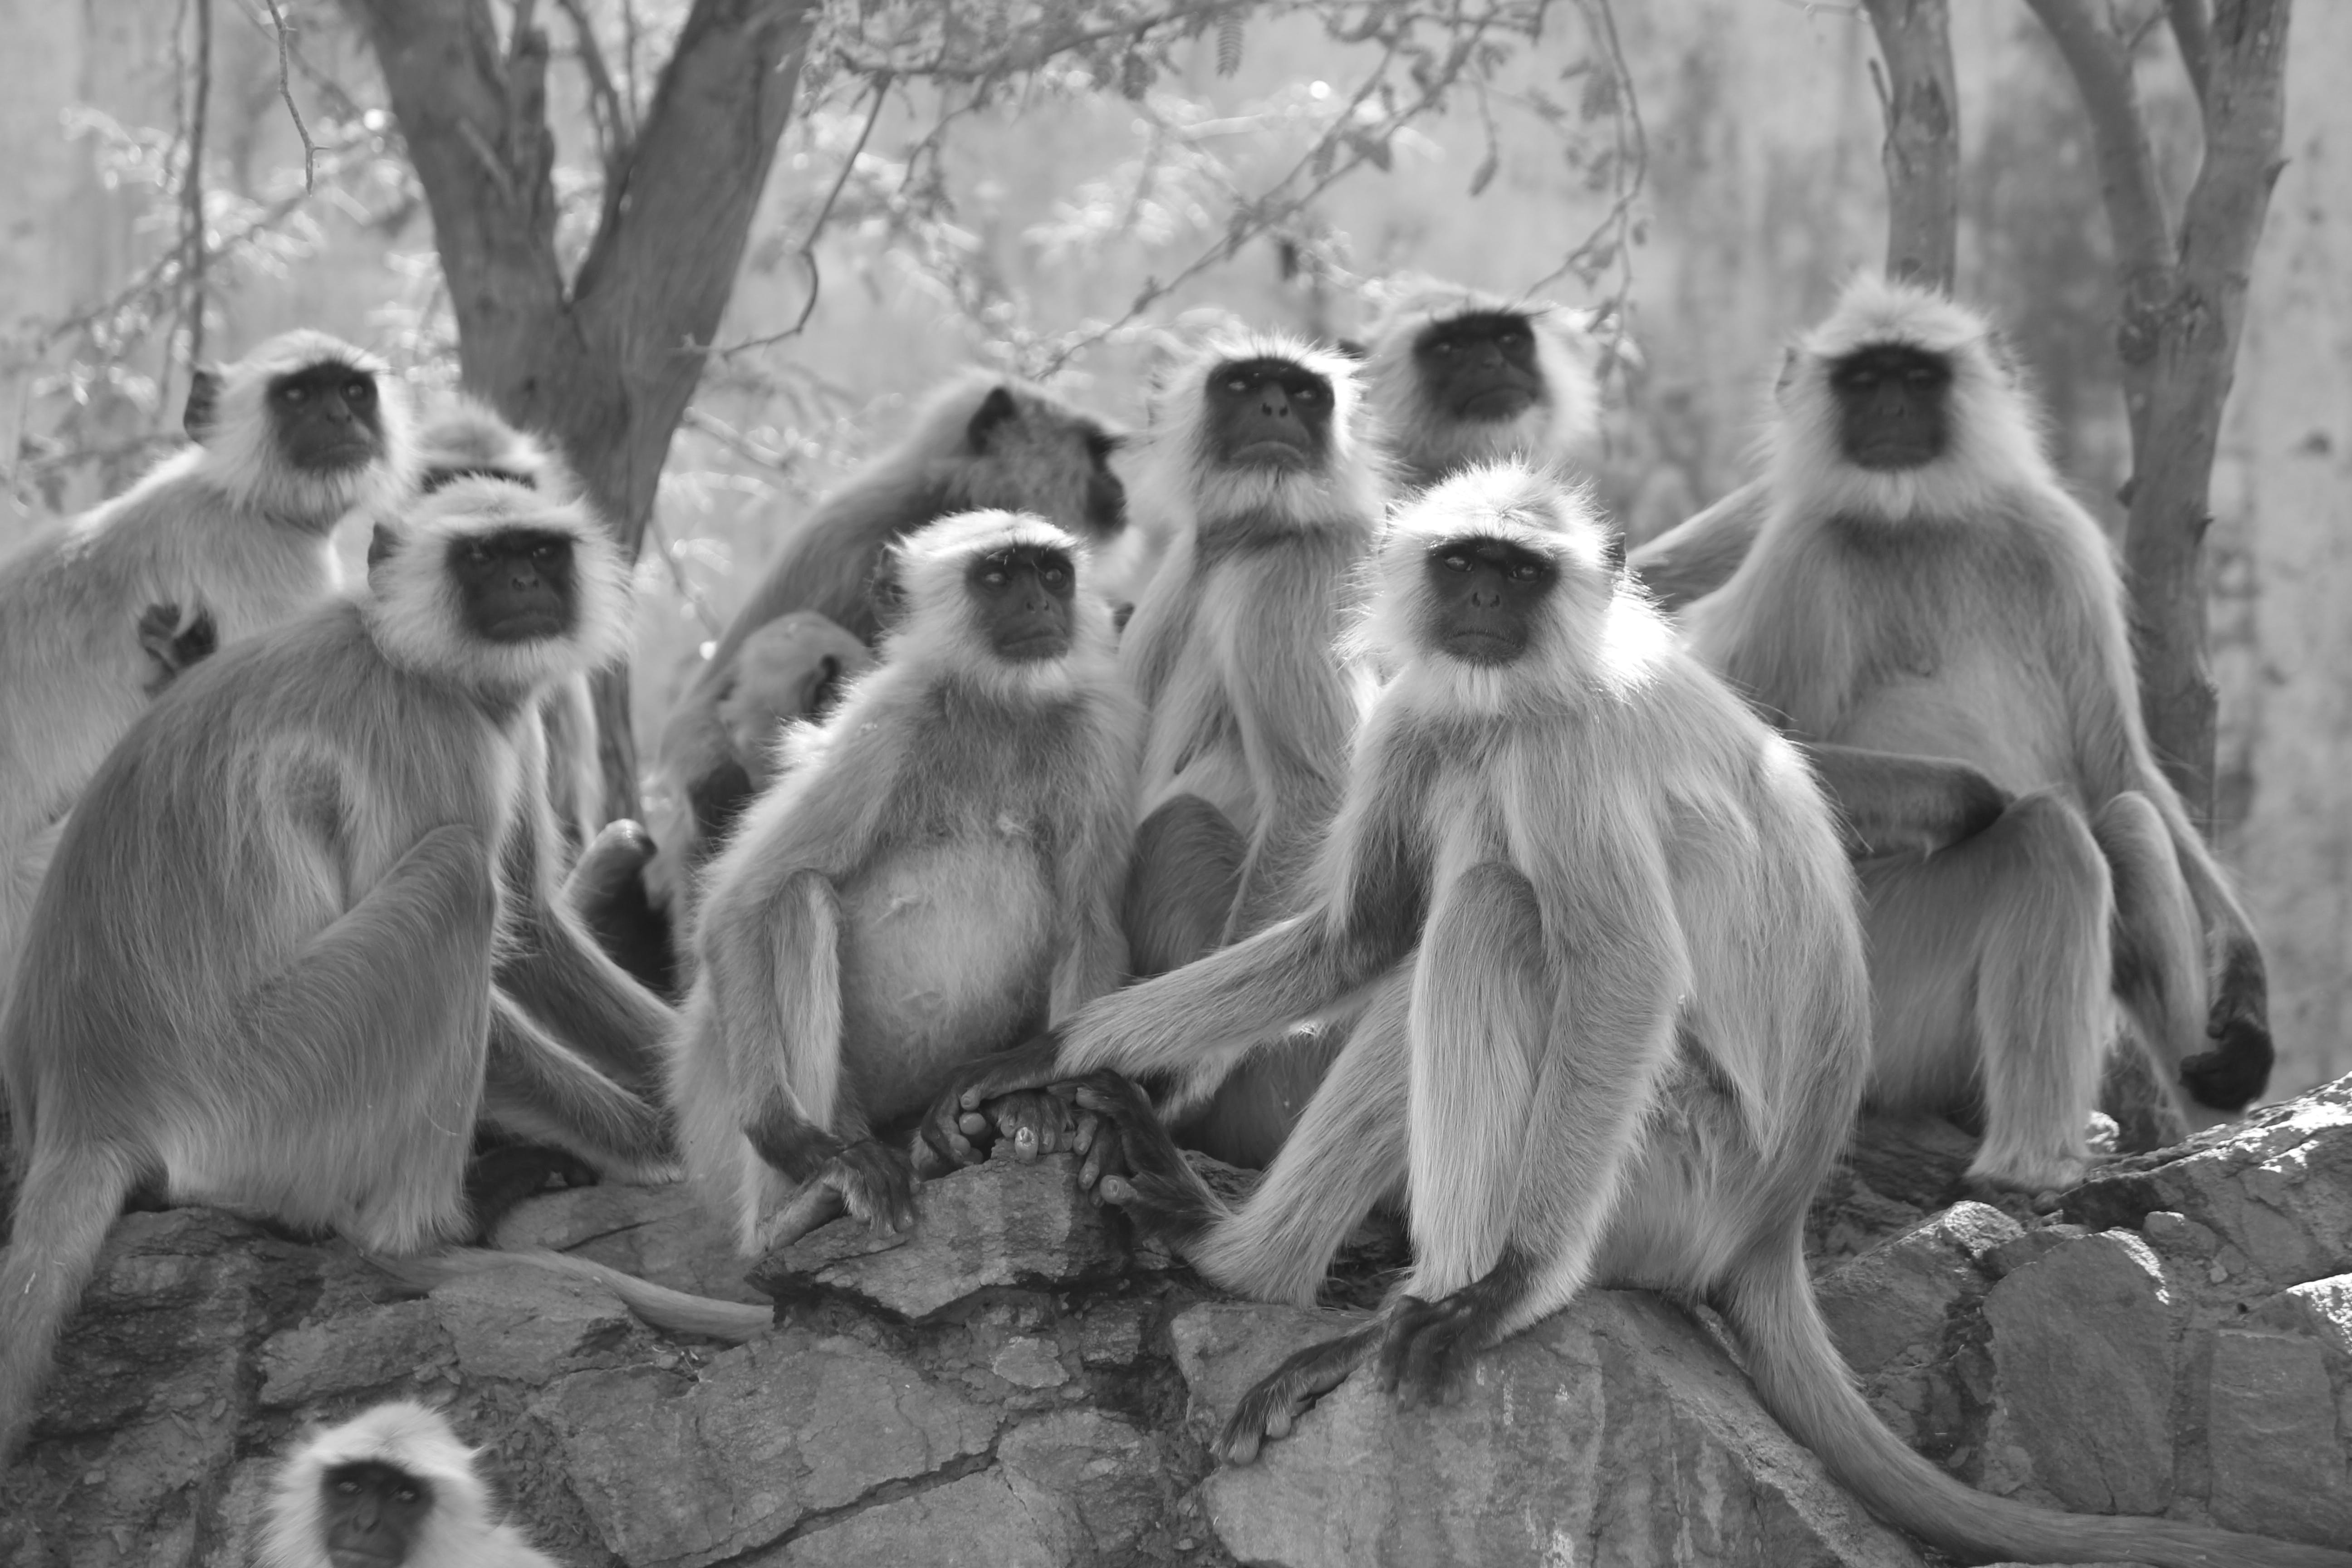 Grayscale Photo of Gray Langur Sitting Next to Trees